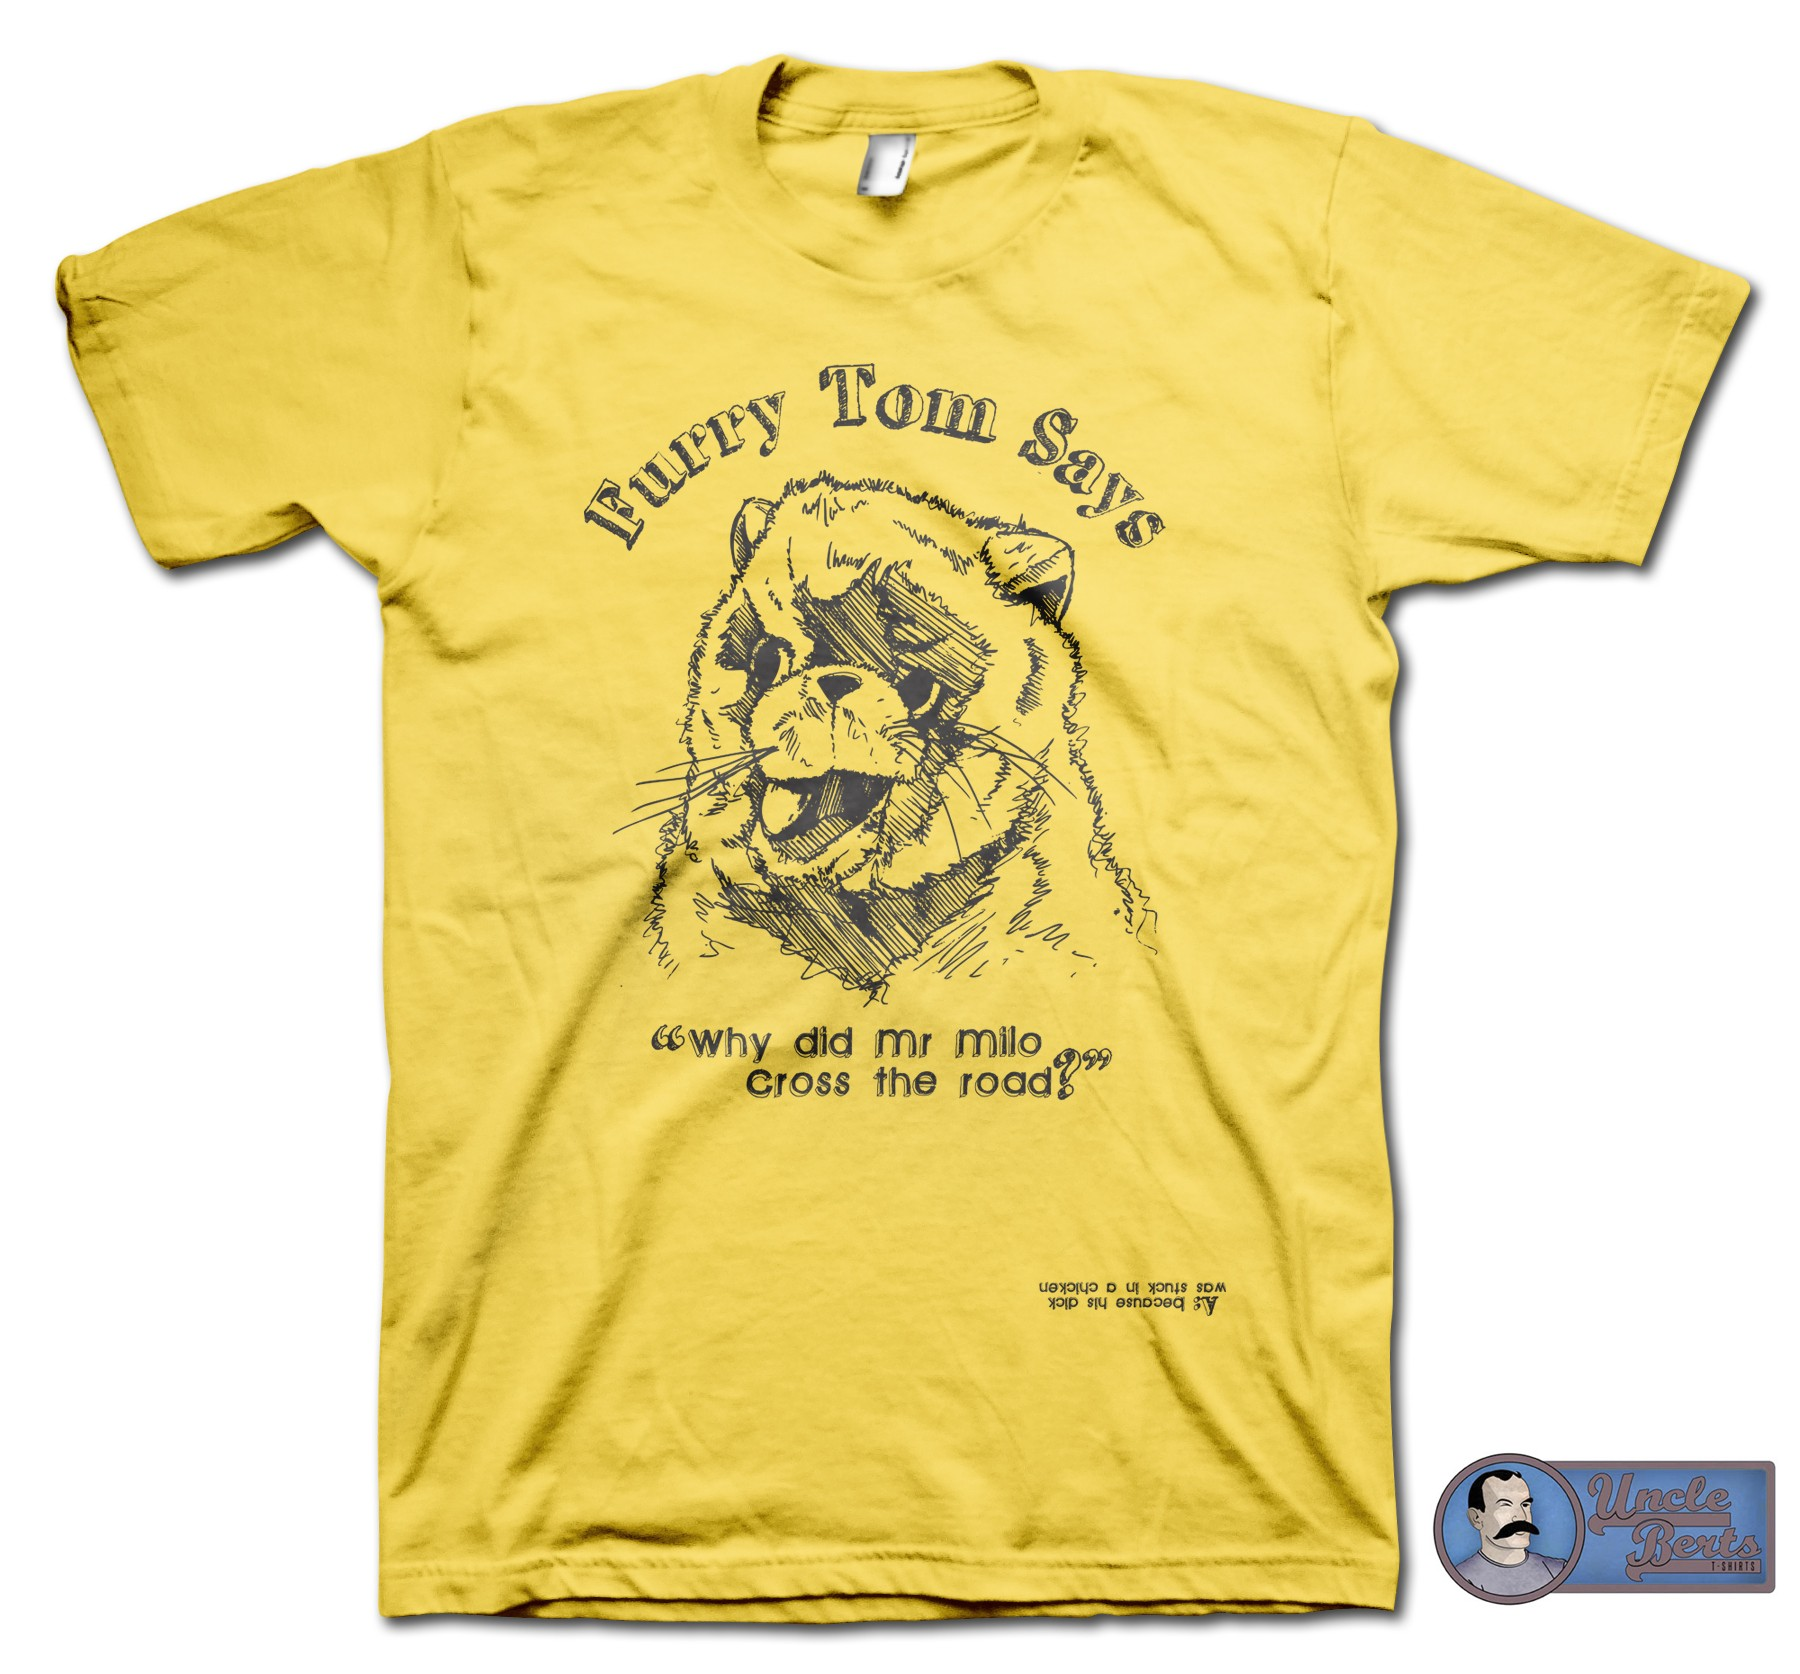 The Last Boy Scout (1991) inspired Furry Tom Says T-Shirt